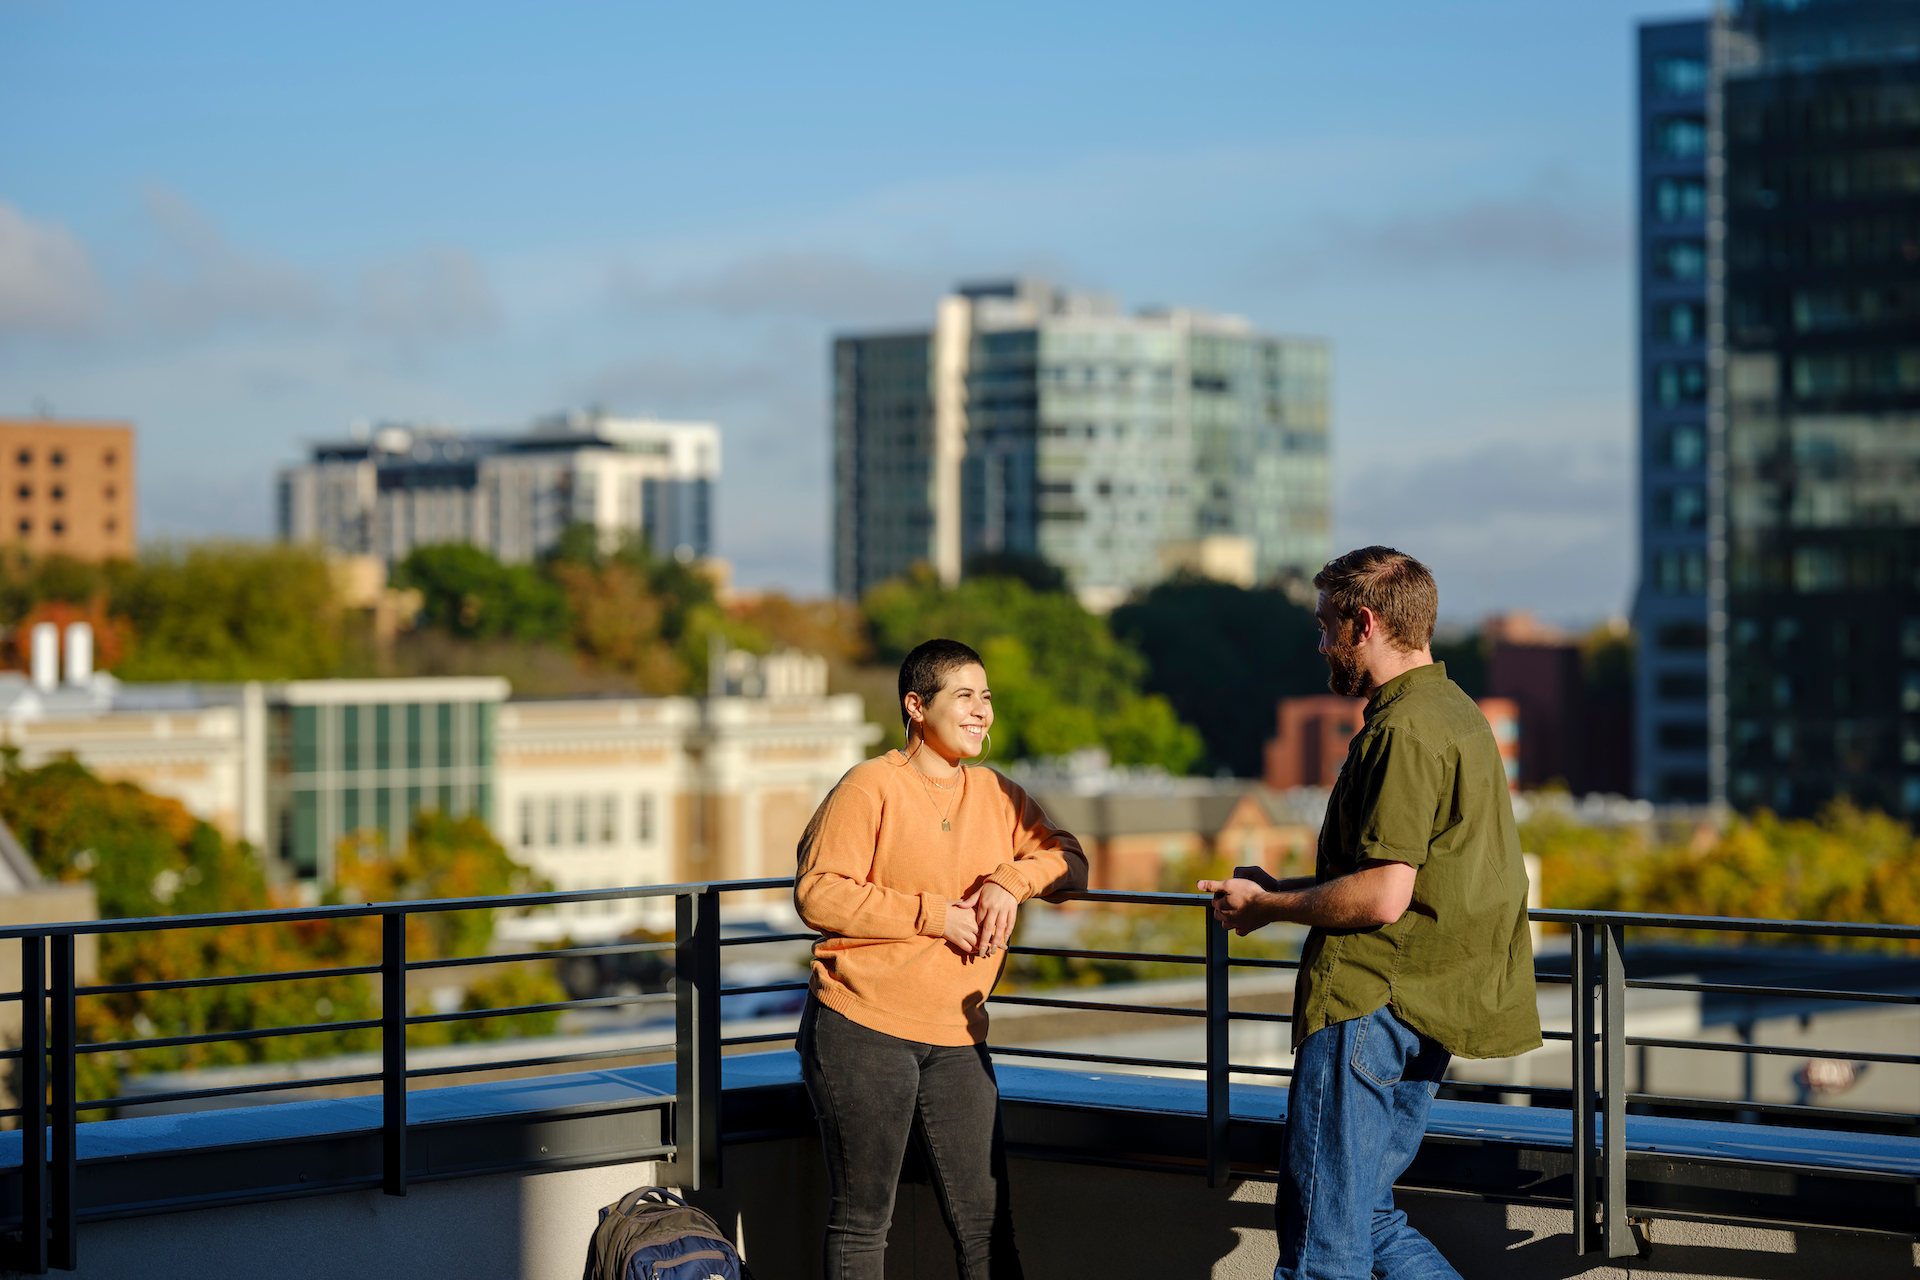 Two psu online students talking on rooftop terrace